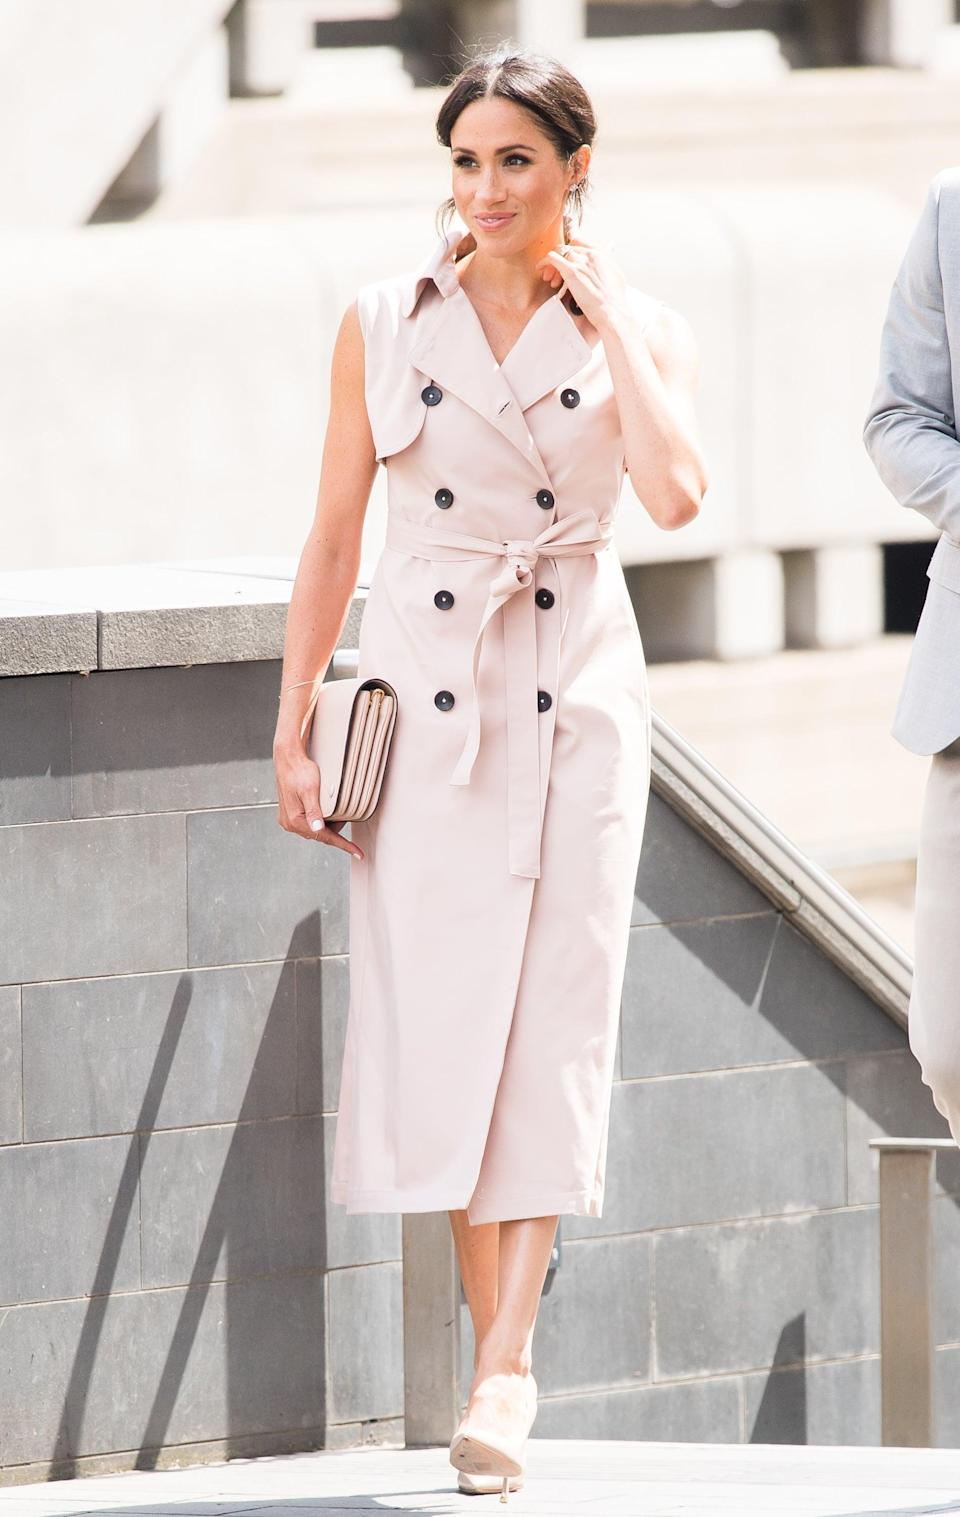 """<p>A belted trench-coat dress is one of Meghan's go-to looks. In July 2018, the duchess wore <a href=""""https://www.popsugar.com/fashion/Meghan-Markle-Pink-Trench-Dress-House-Nonie-45055695"""" class=""""link rapid-noclick-resp"""" rel=""""nofollow noopener"""" target=""""_blank"""" data-ylk=""""slk:a pink trench dress by Canadian designer Nonie"""">a pink trench dress by Canadian designer Nonie</a> to visit The Nelson Mandela Centenary Exhibition at Southbank Centre in July 2018.</p>"""